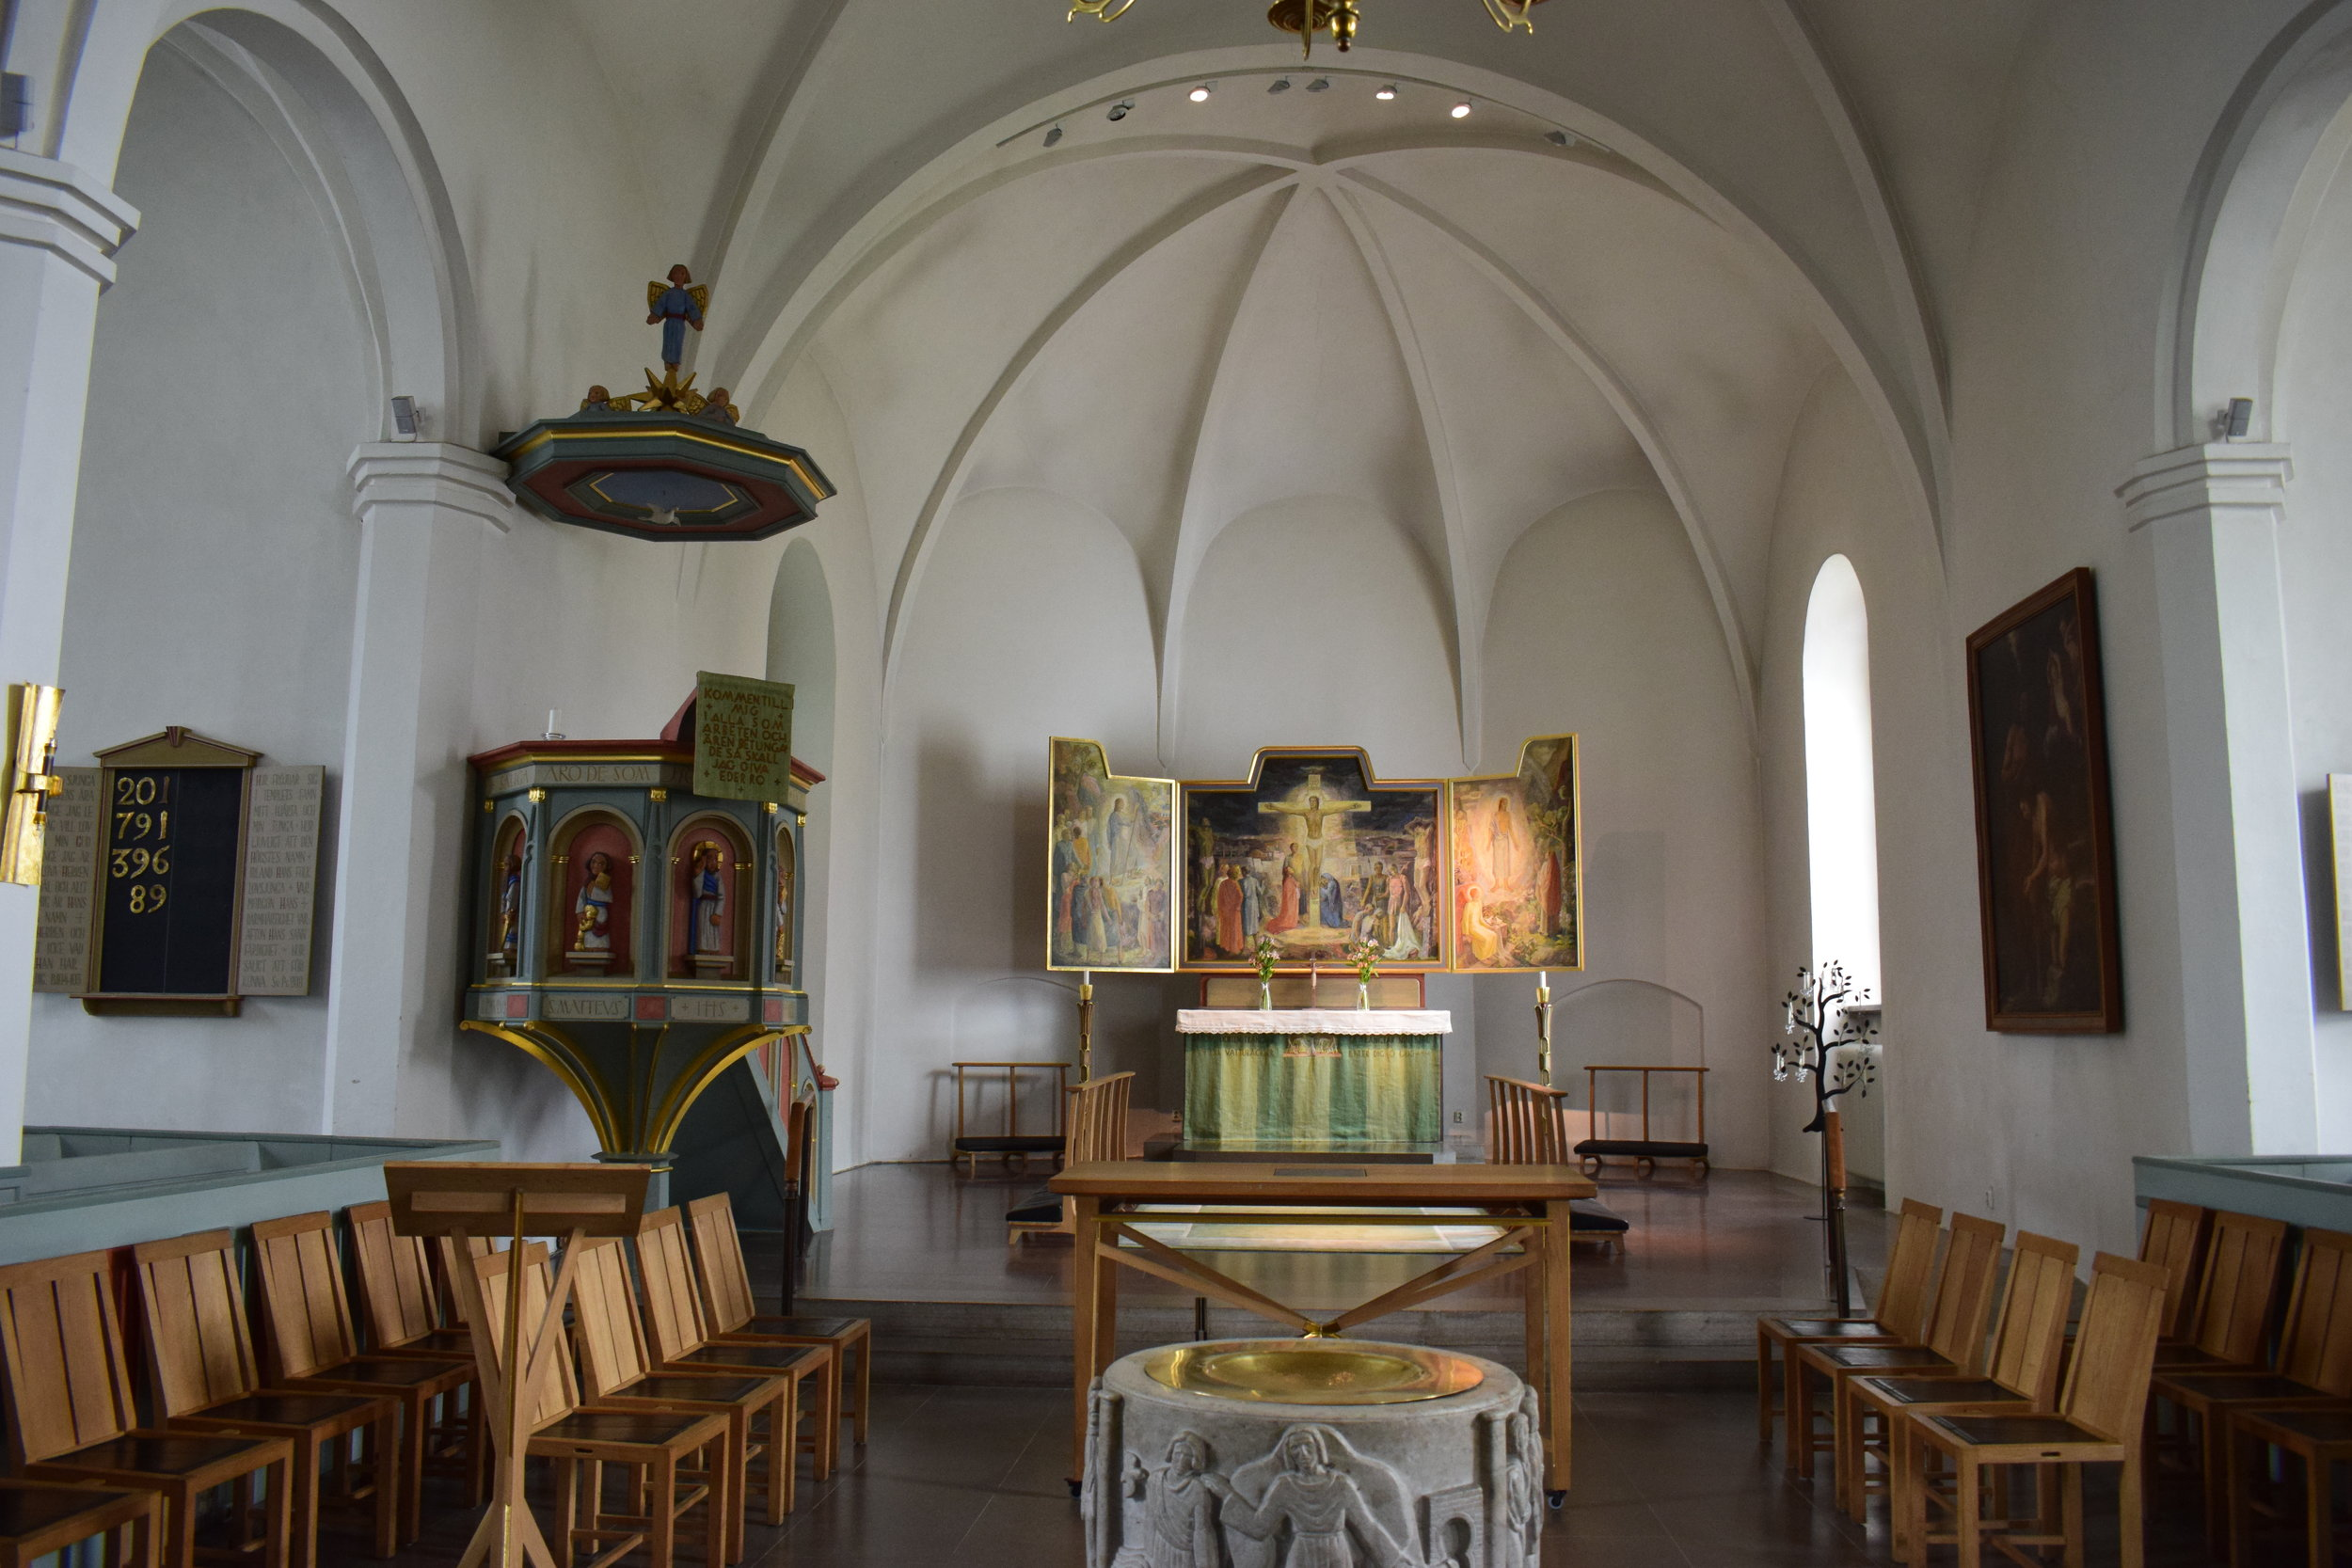 Ängeholm church